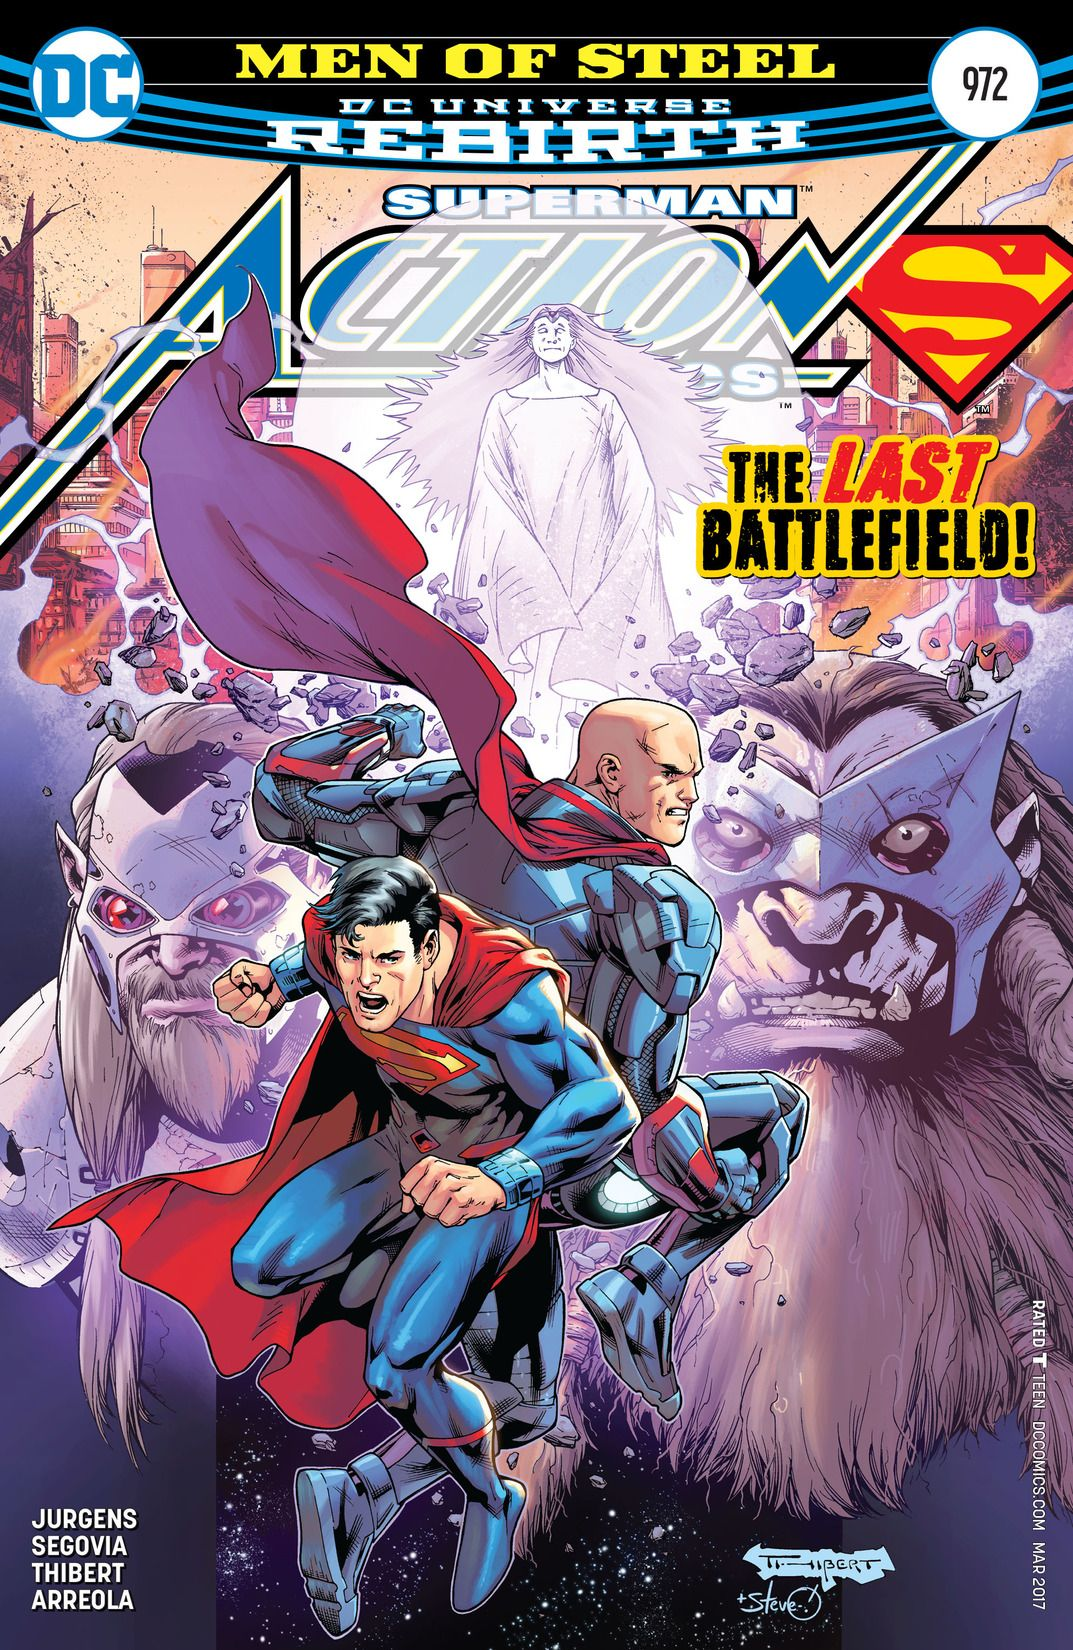 Action Comics Vol 1 972.jpg